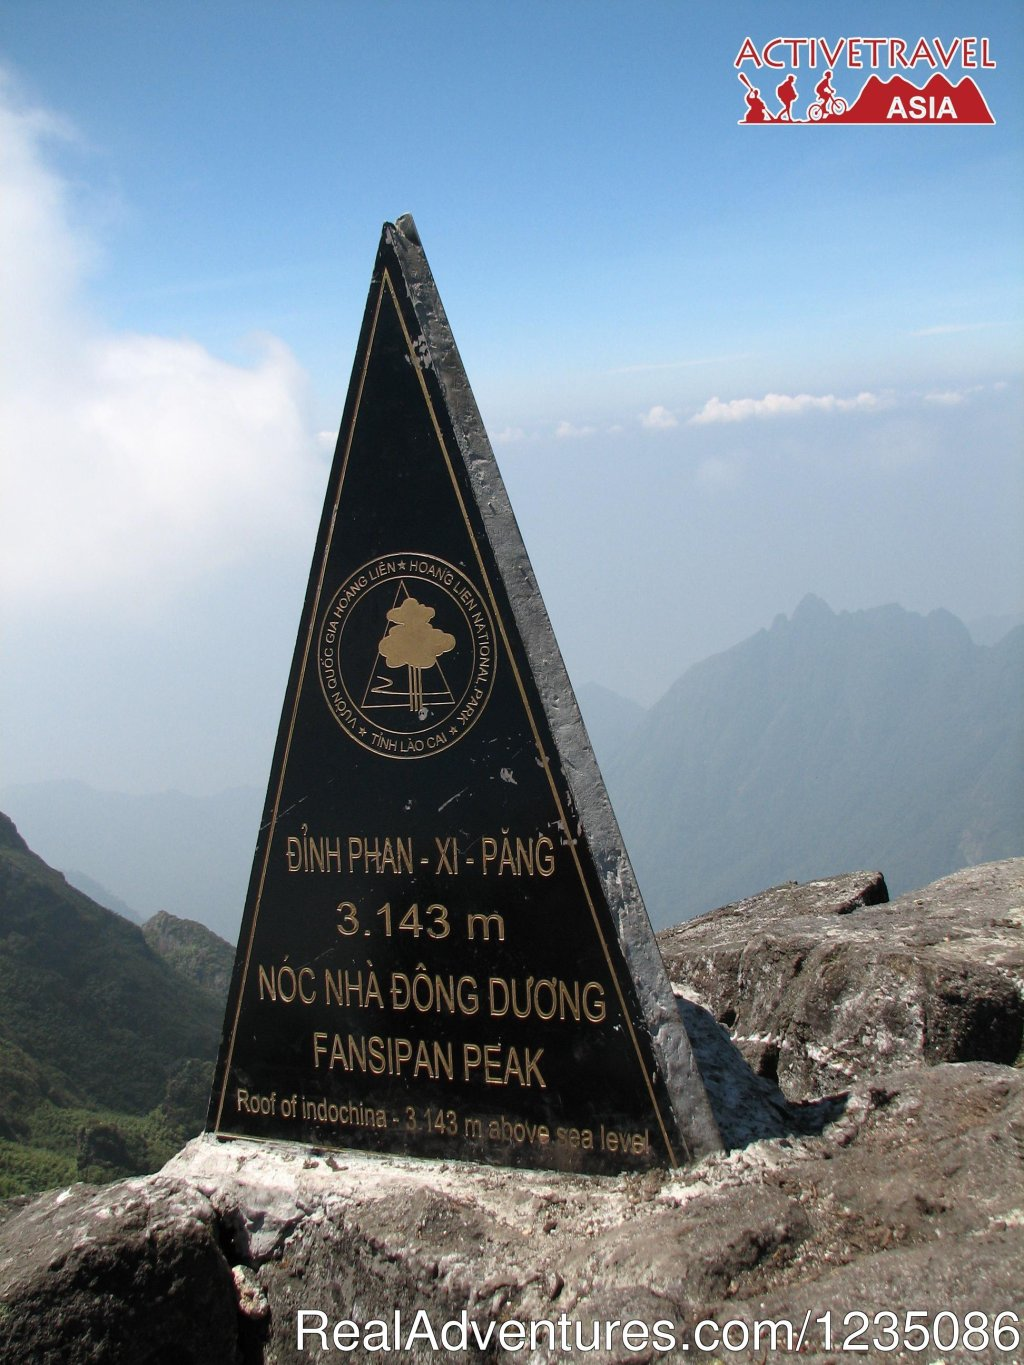 Conquer Mount Fansipan, Vietnam - the roof of indochina | Image #9/10 | Conquer Mount Fansipan, the roof of indochina